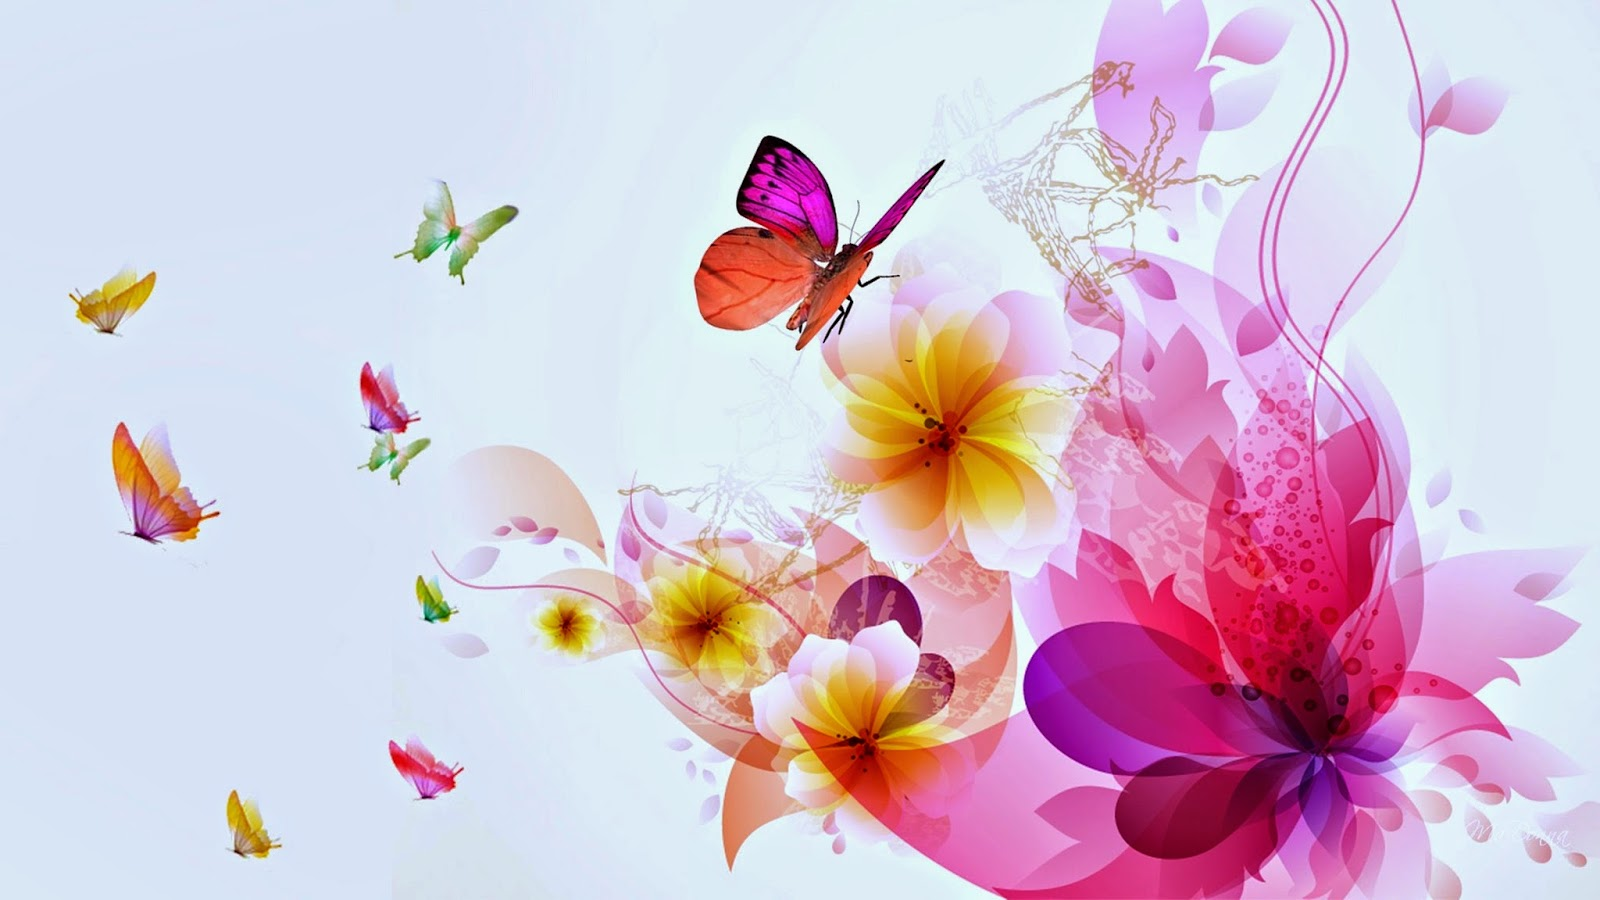 Colorful Butterfly designs background for desktop Abstract HD 1600x900